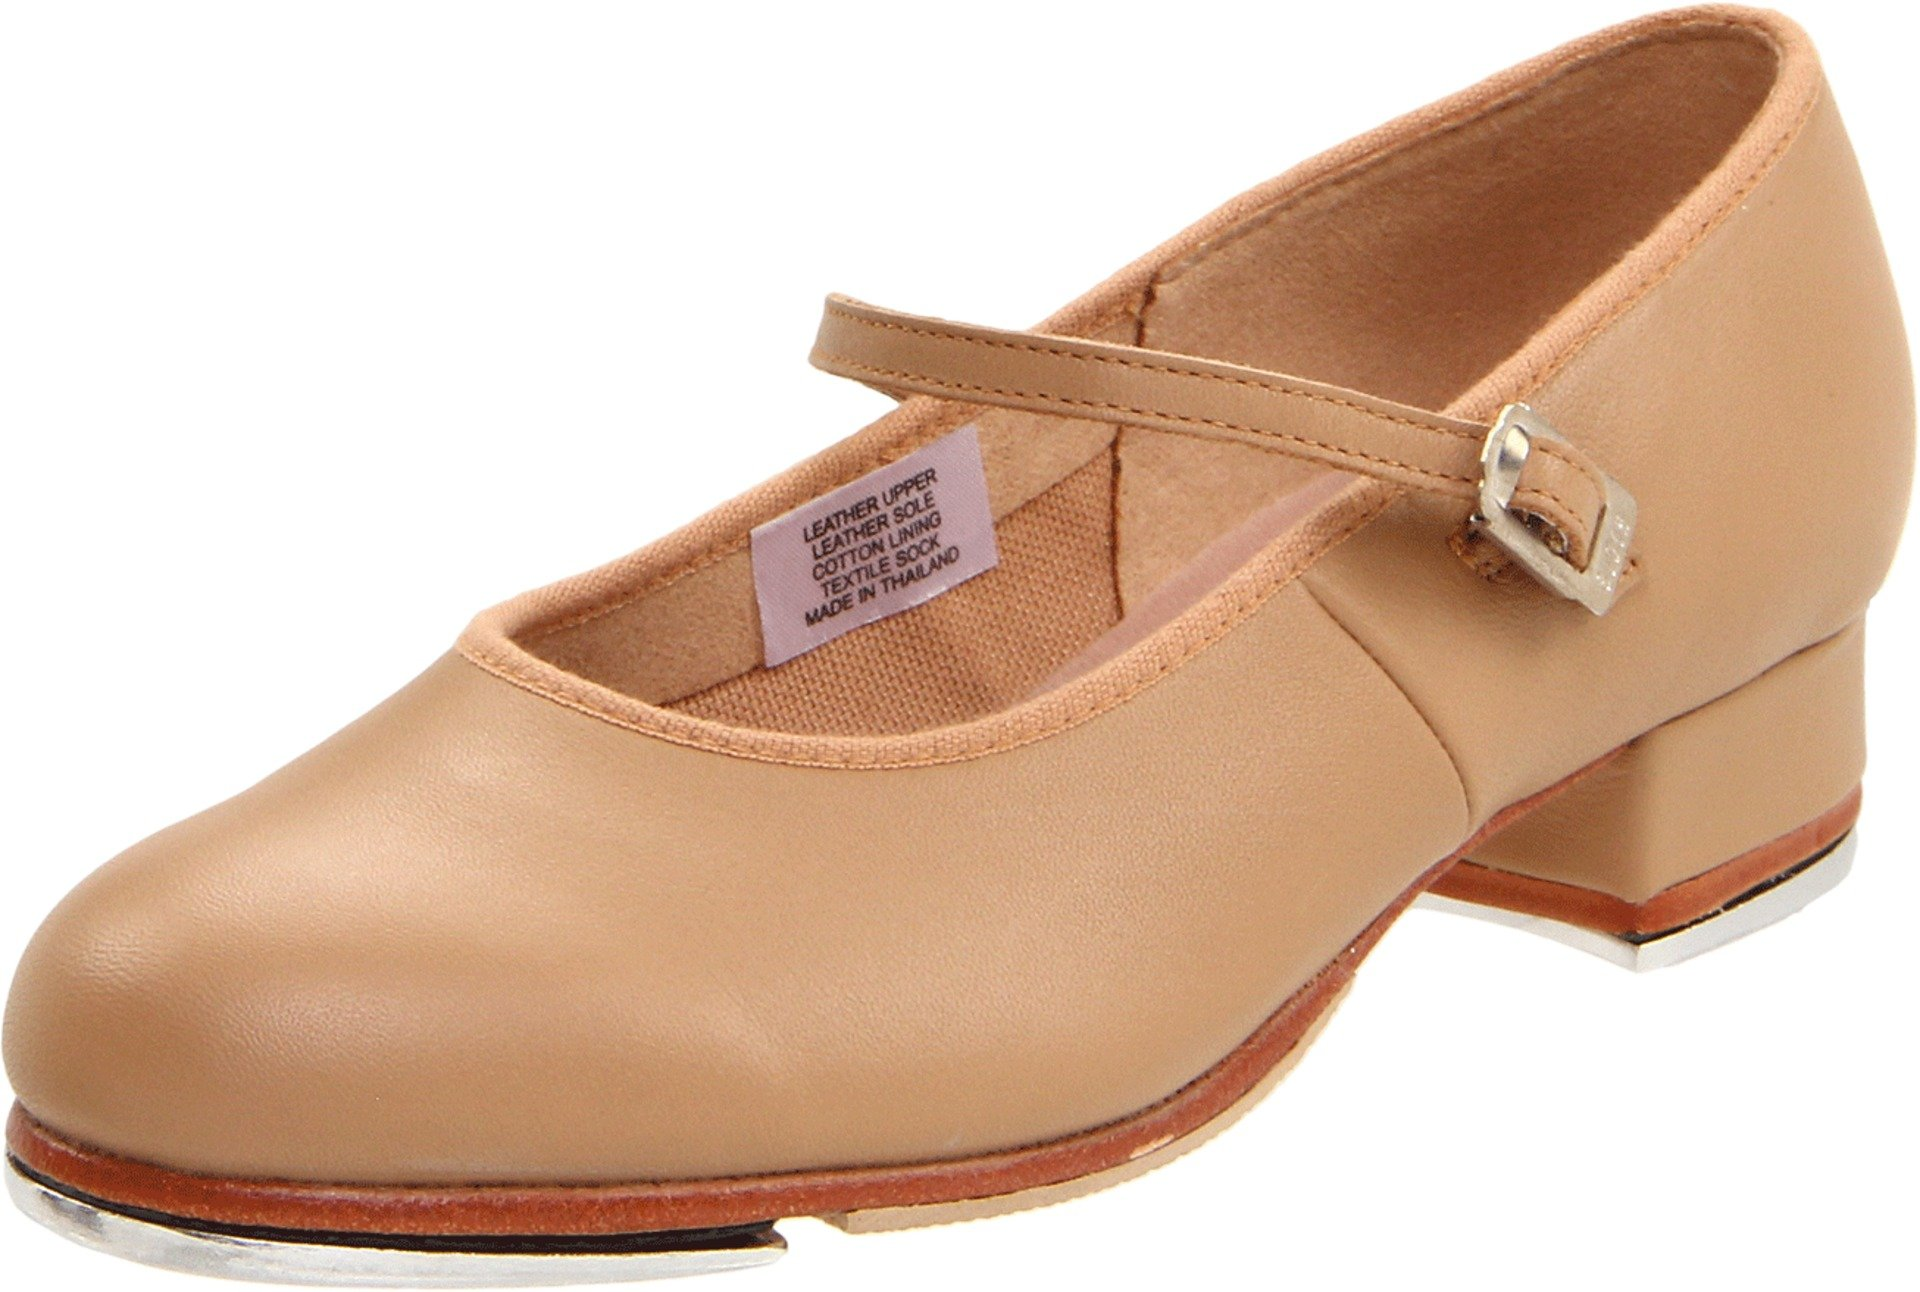 Bloch TAP-ON, Tan, 11 M US by Bloch